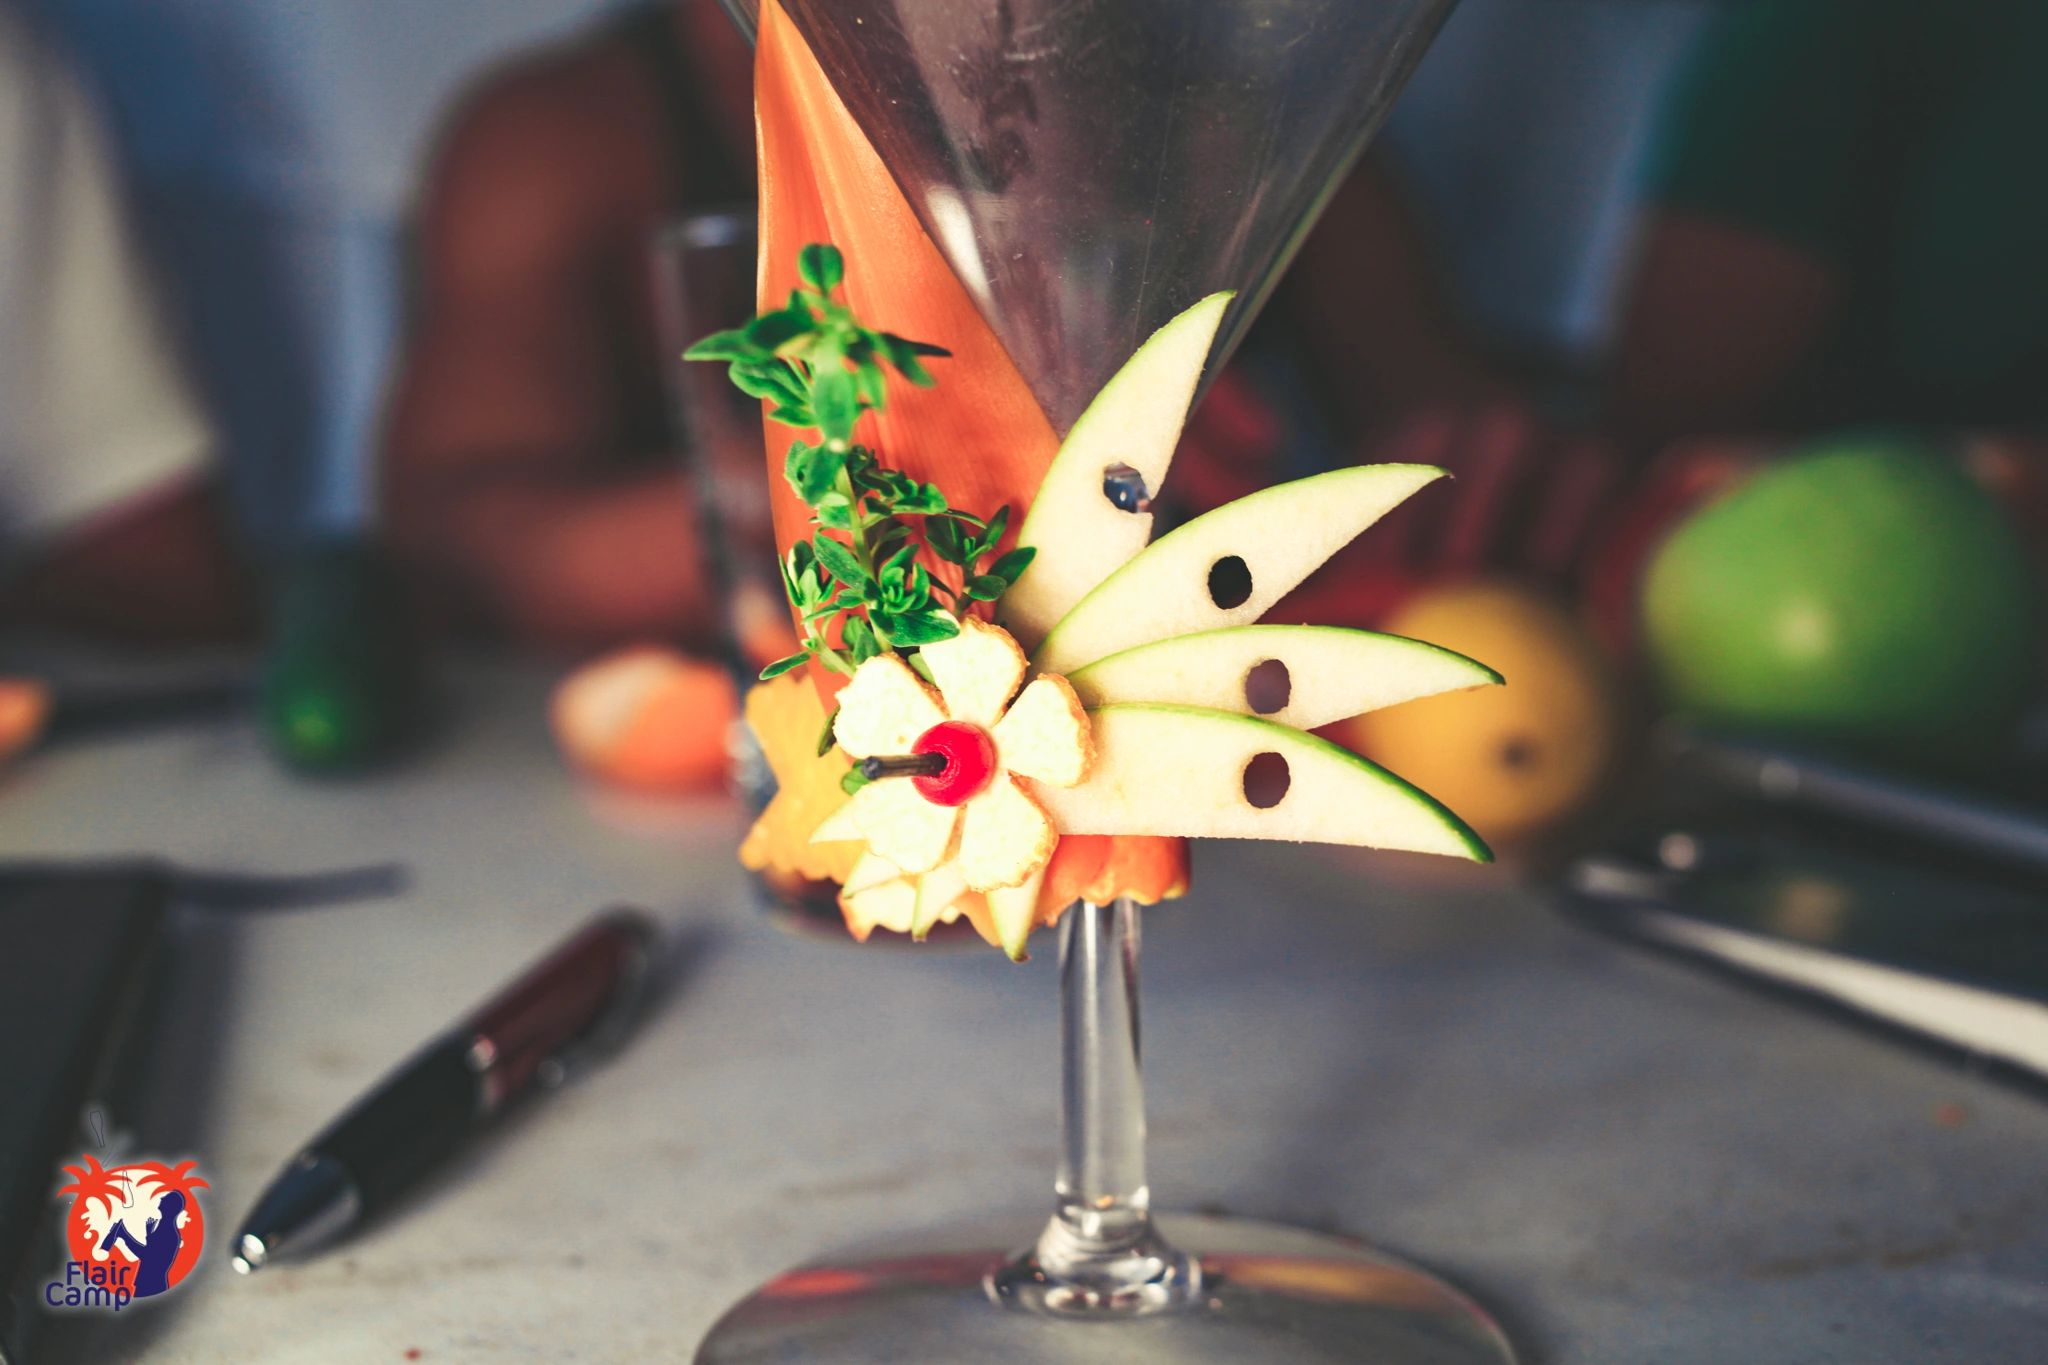 fancy cocktail garnish with an apple fan .  We teach these kinds of garnishes at flair camp.